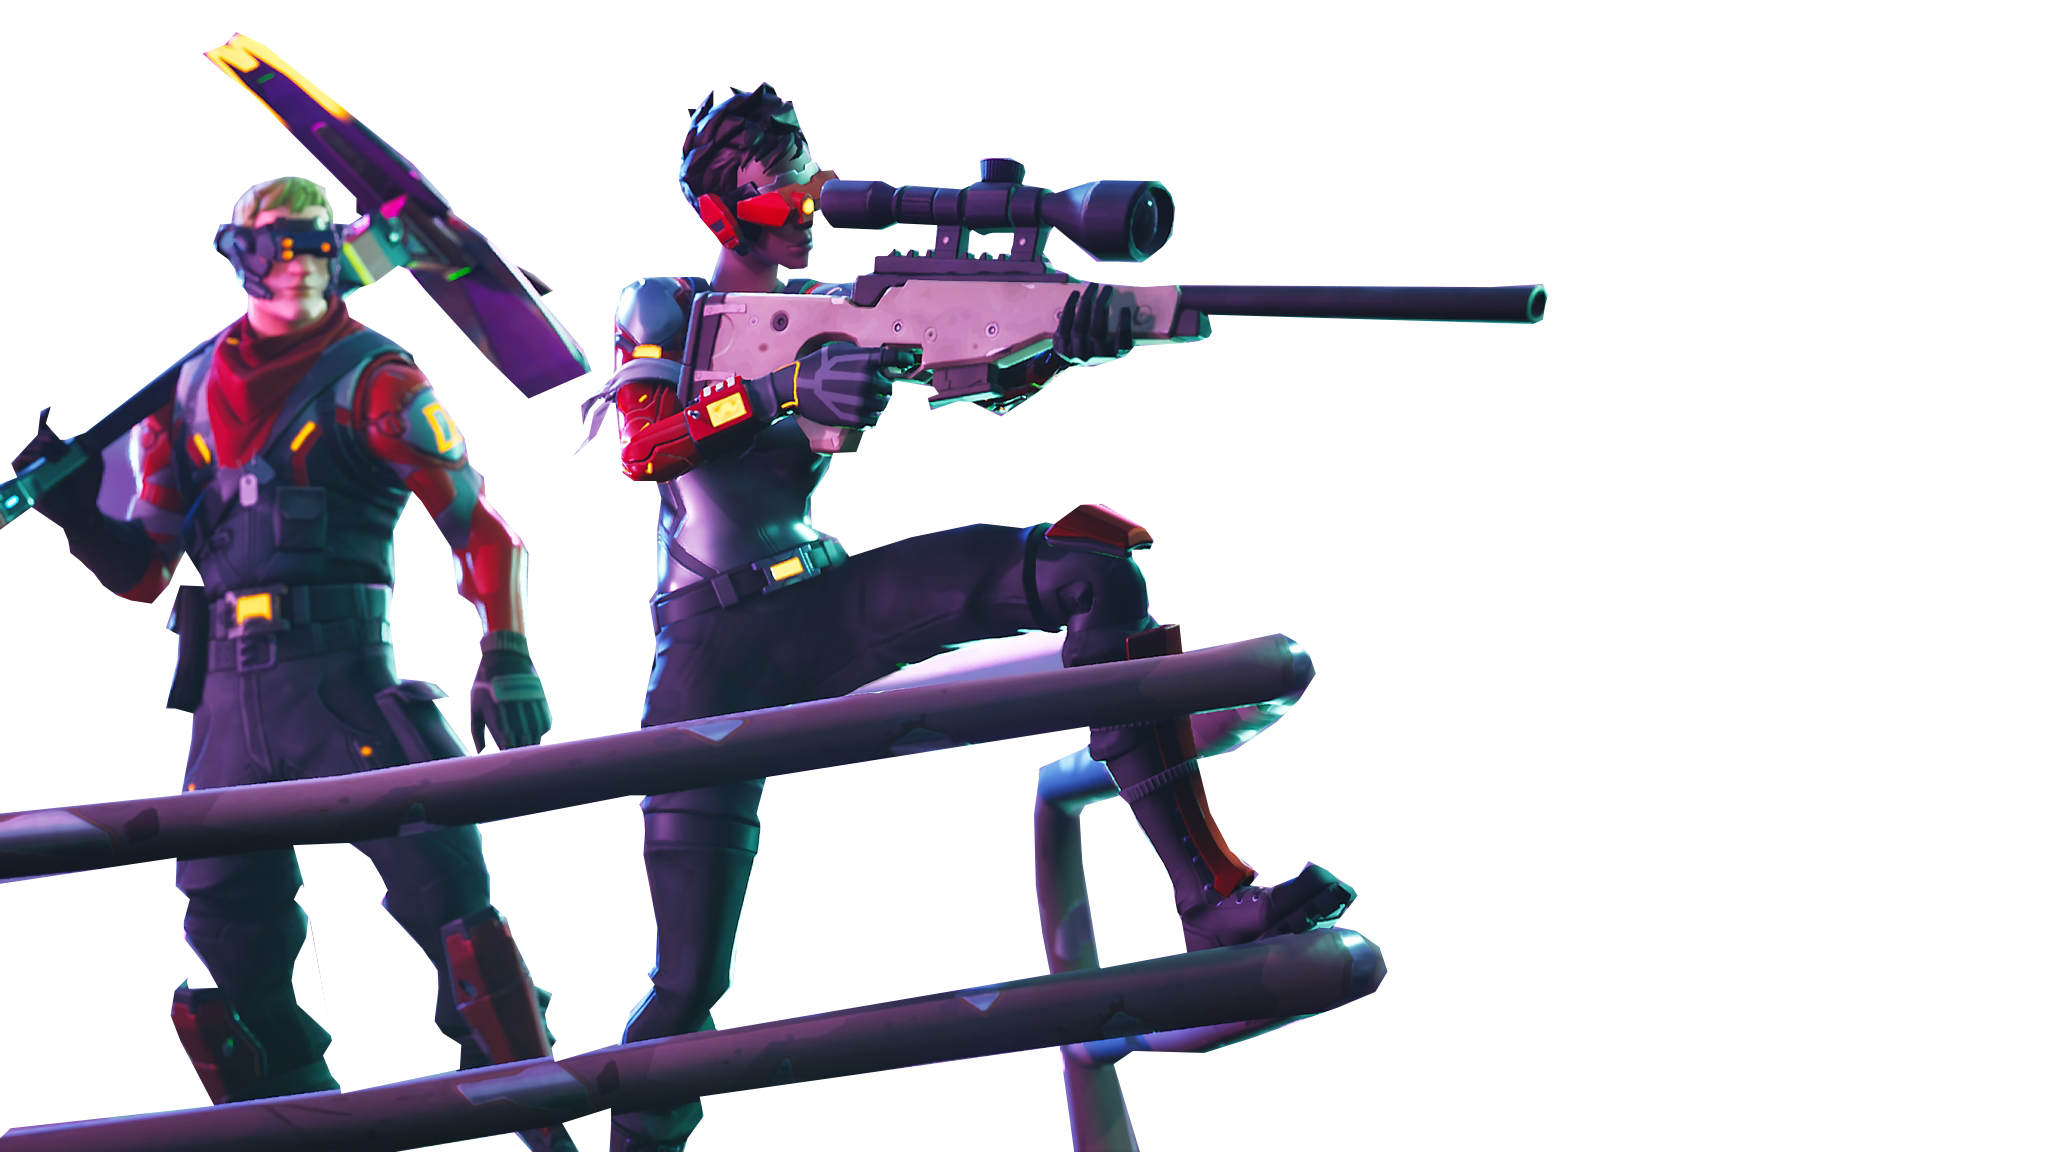 People Aiming Fortnite Thumbnail Template Png Image Fortnite Thumbnail Fortnite Wolf Wallpaper